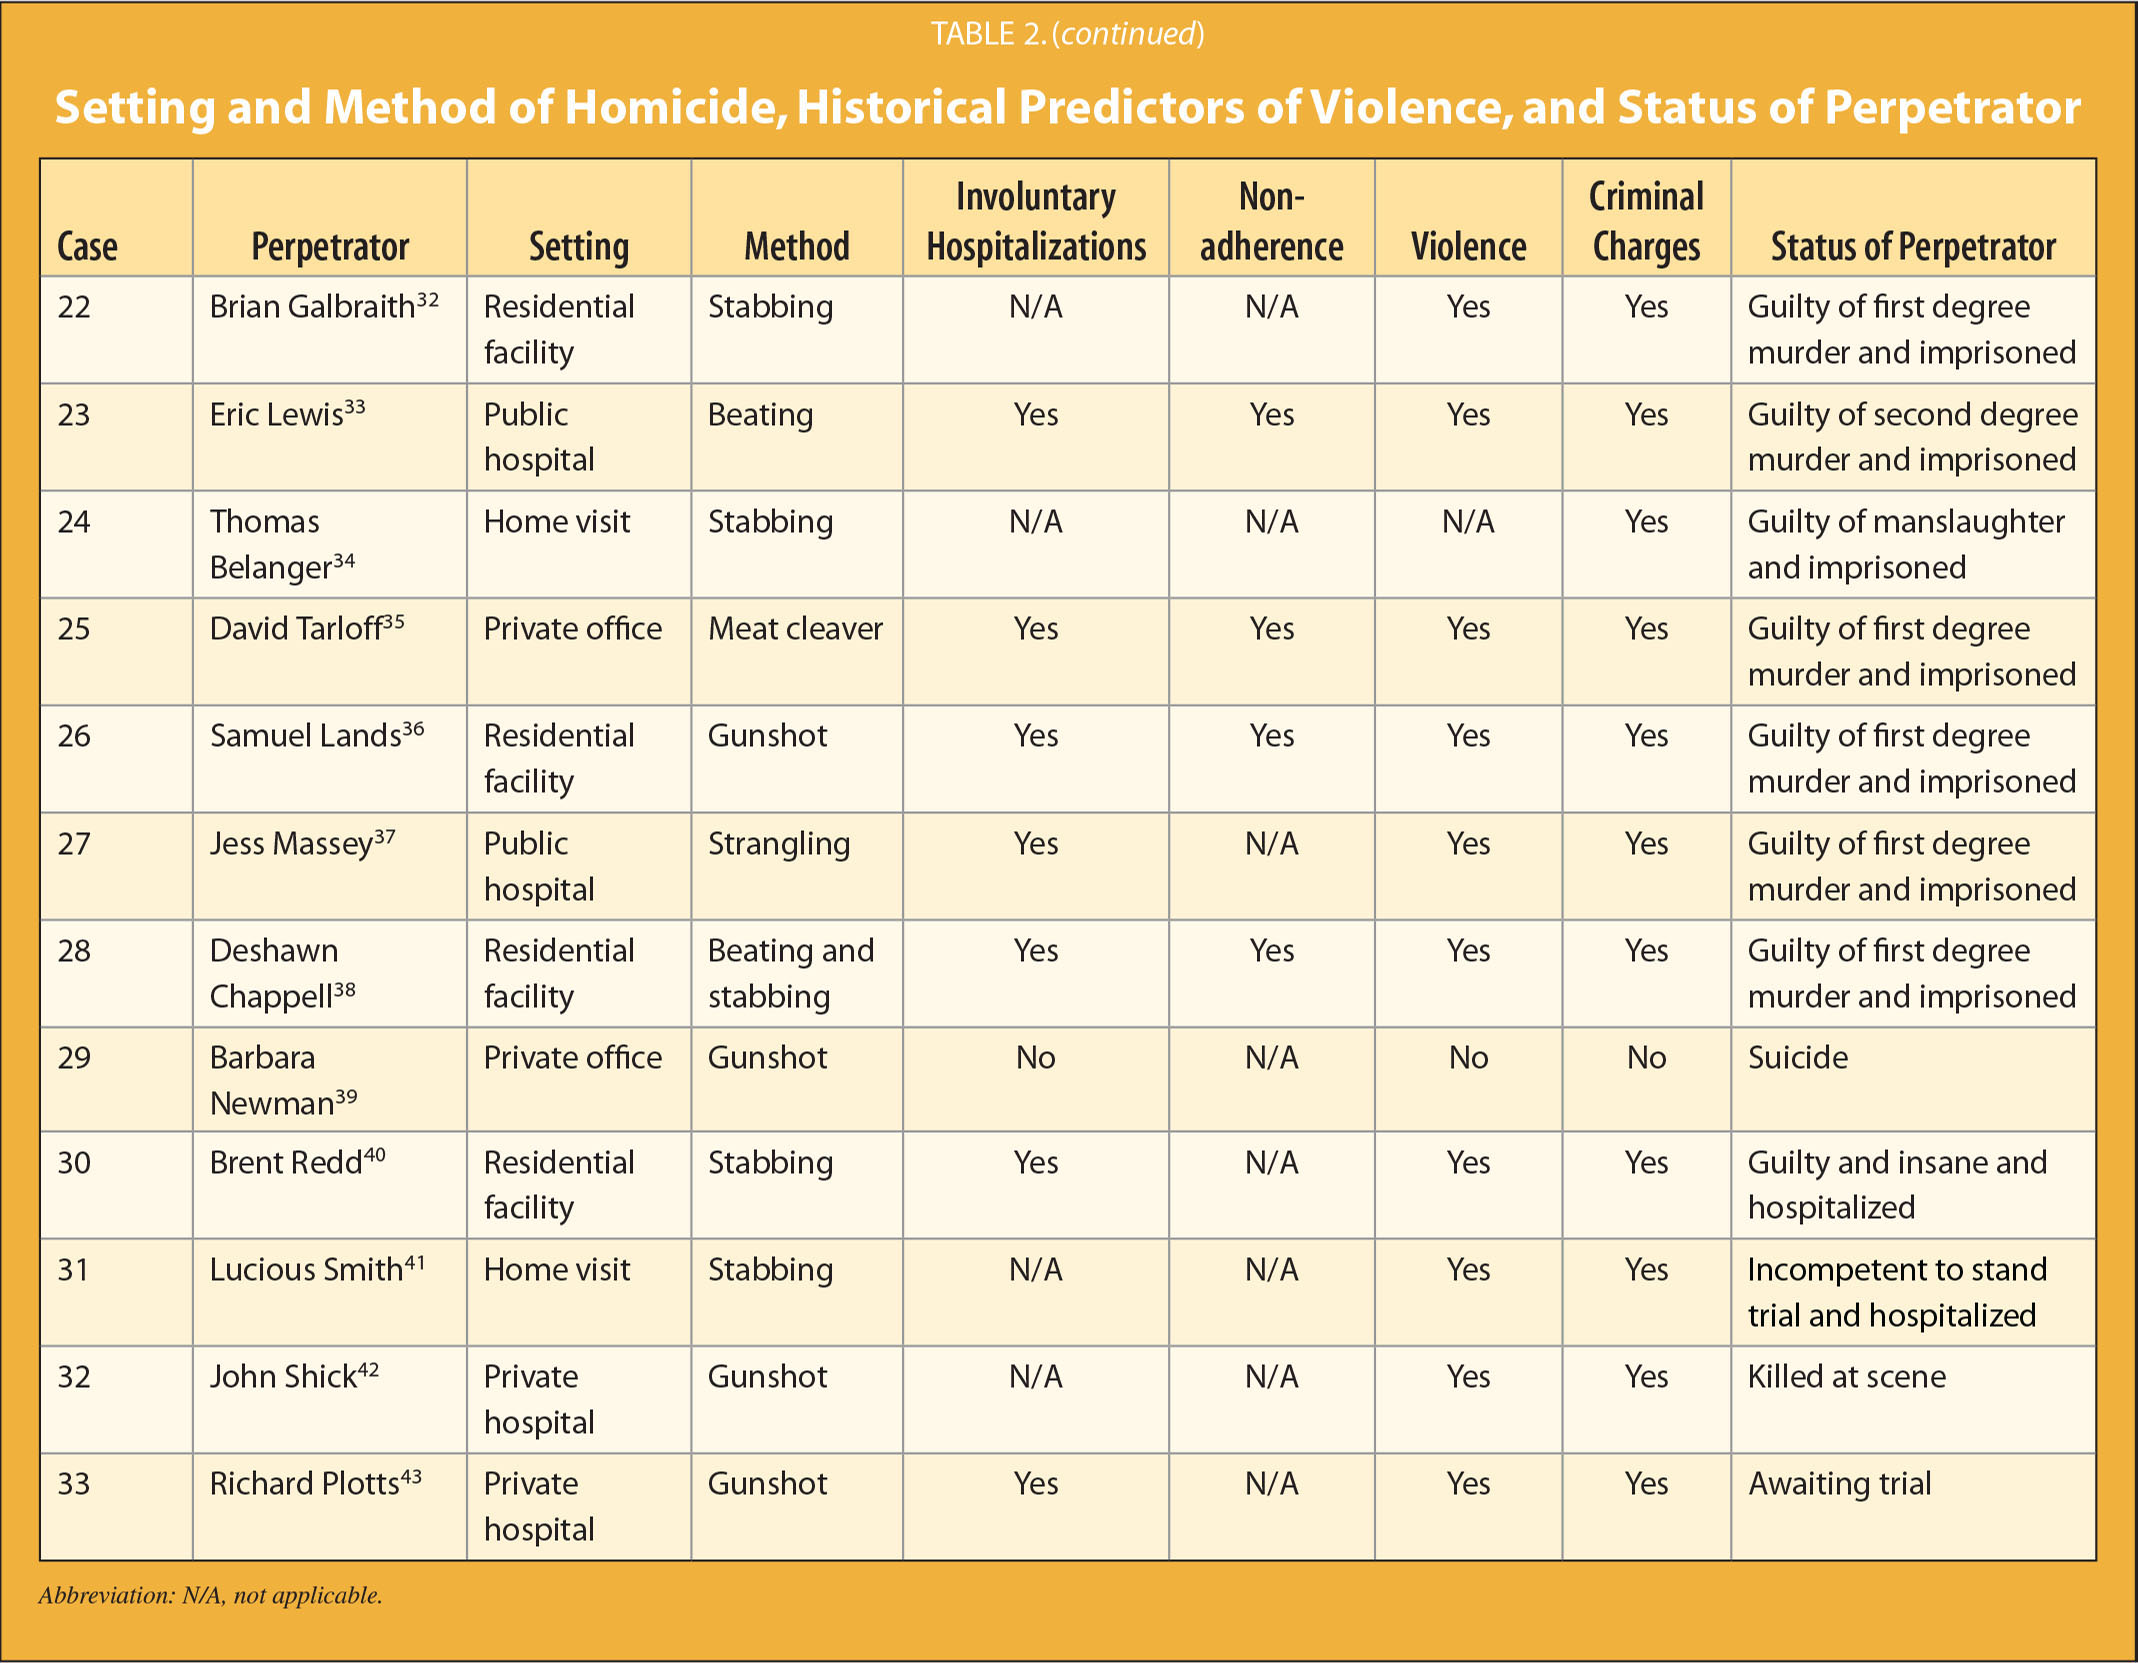 Setting and Method of Homicide, Historical Predictors of Violence, and Status of Perpetrator